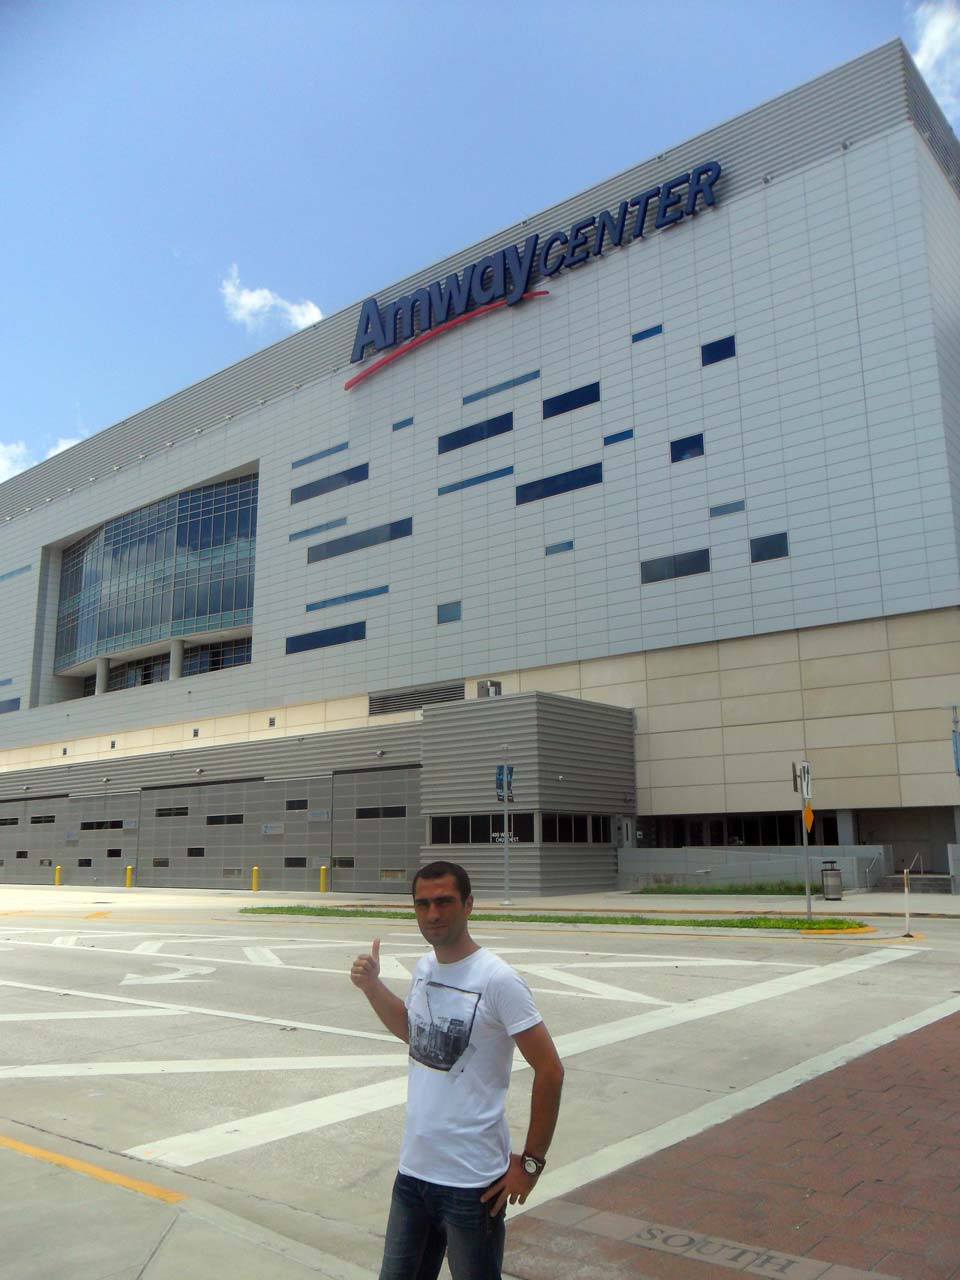 Son durağımız ise Orlando Magic'in sahası Amway Center